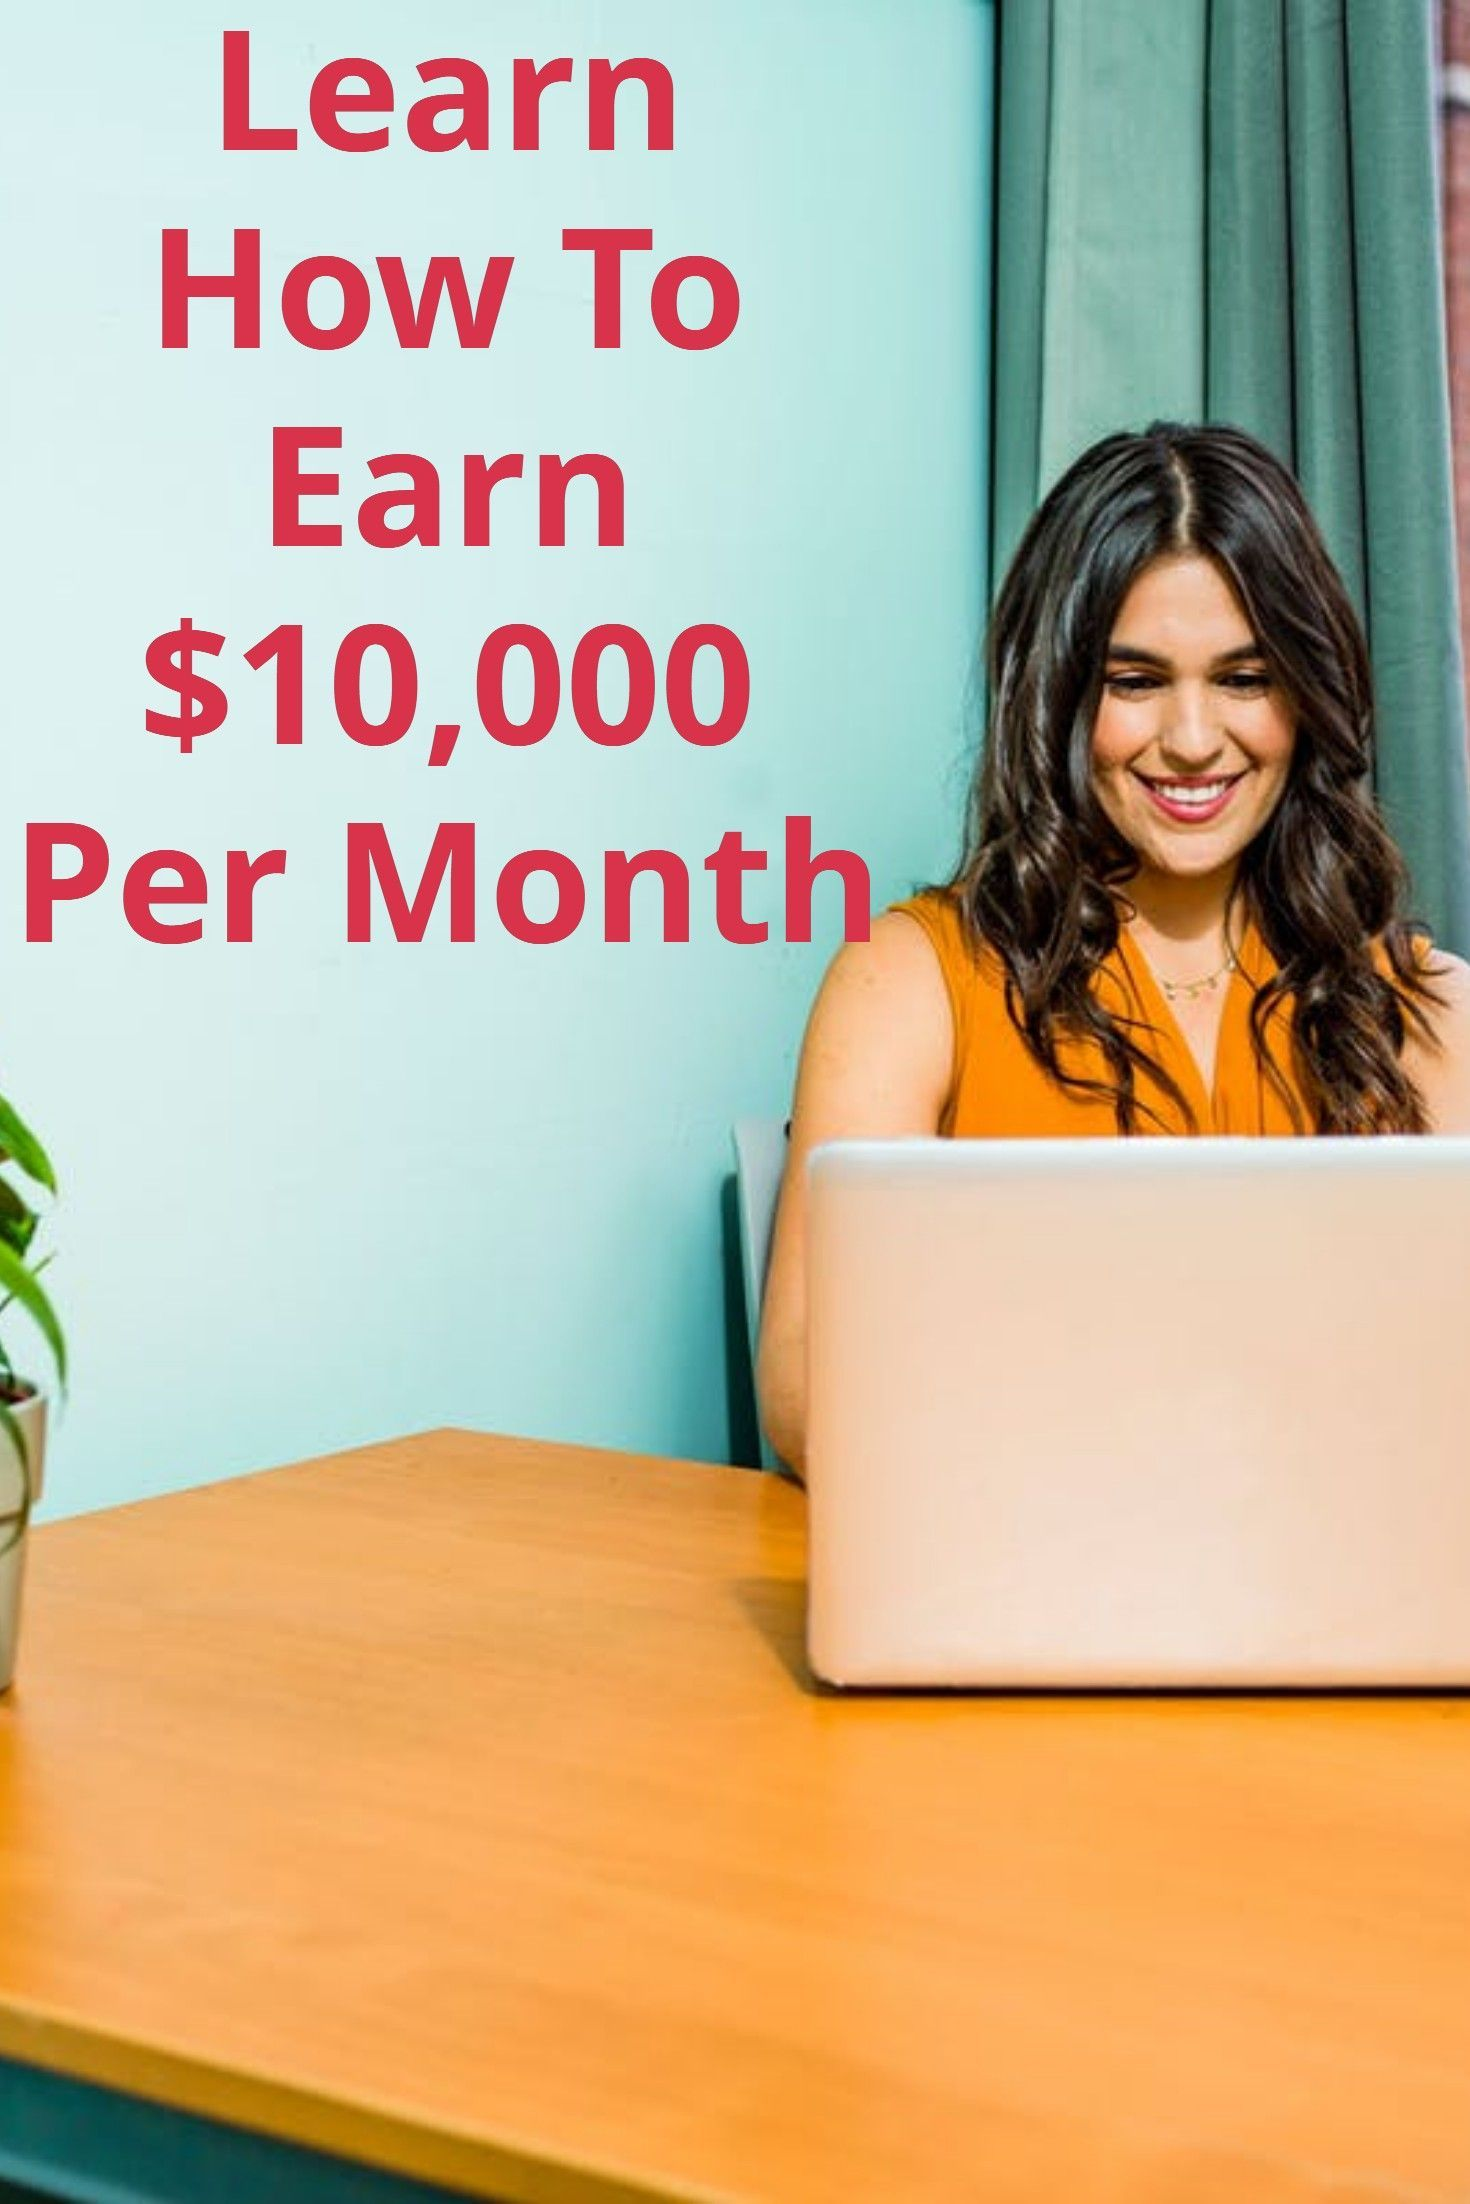 Learn the fastest way to earn 10,000 per month. Only